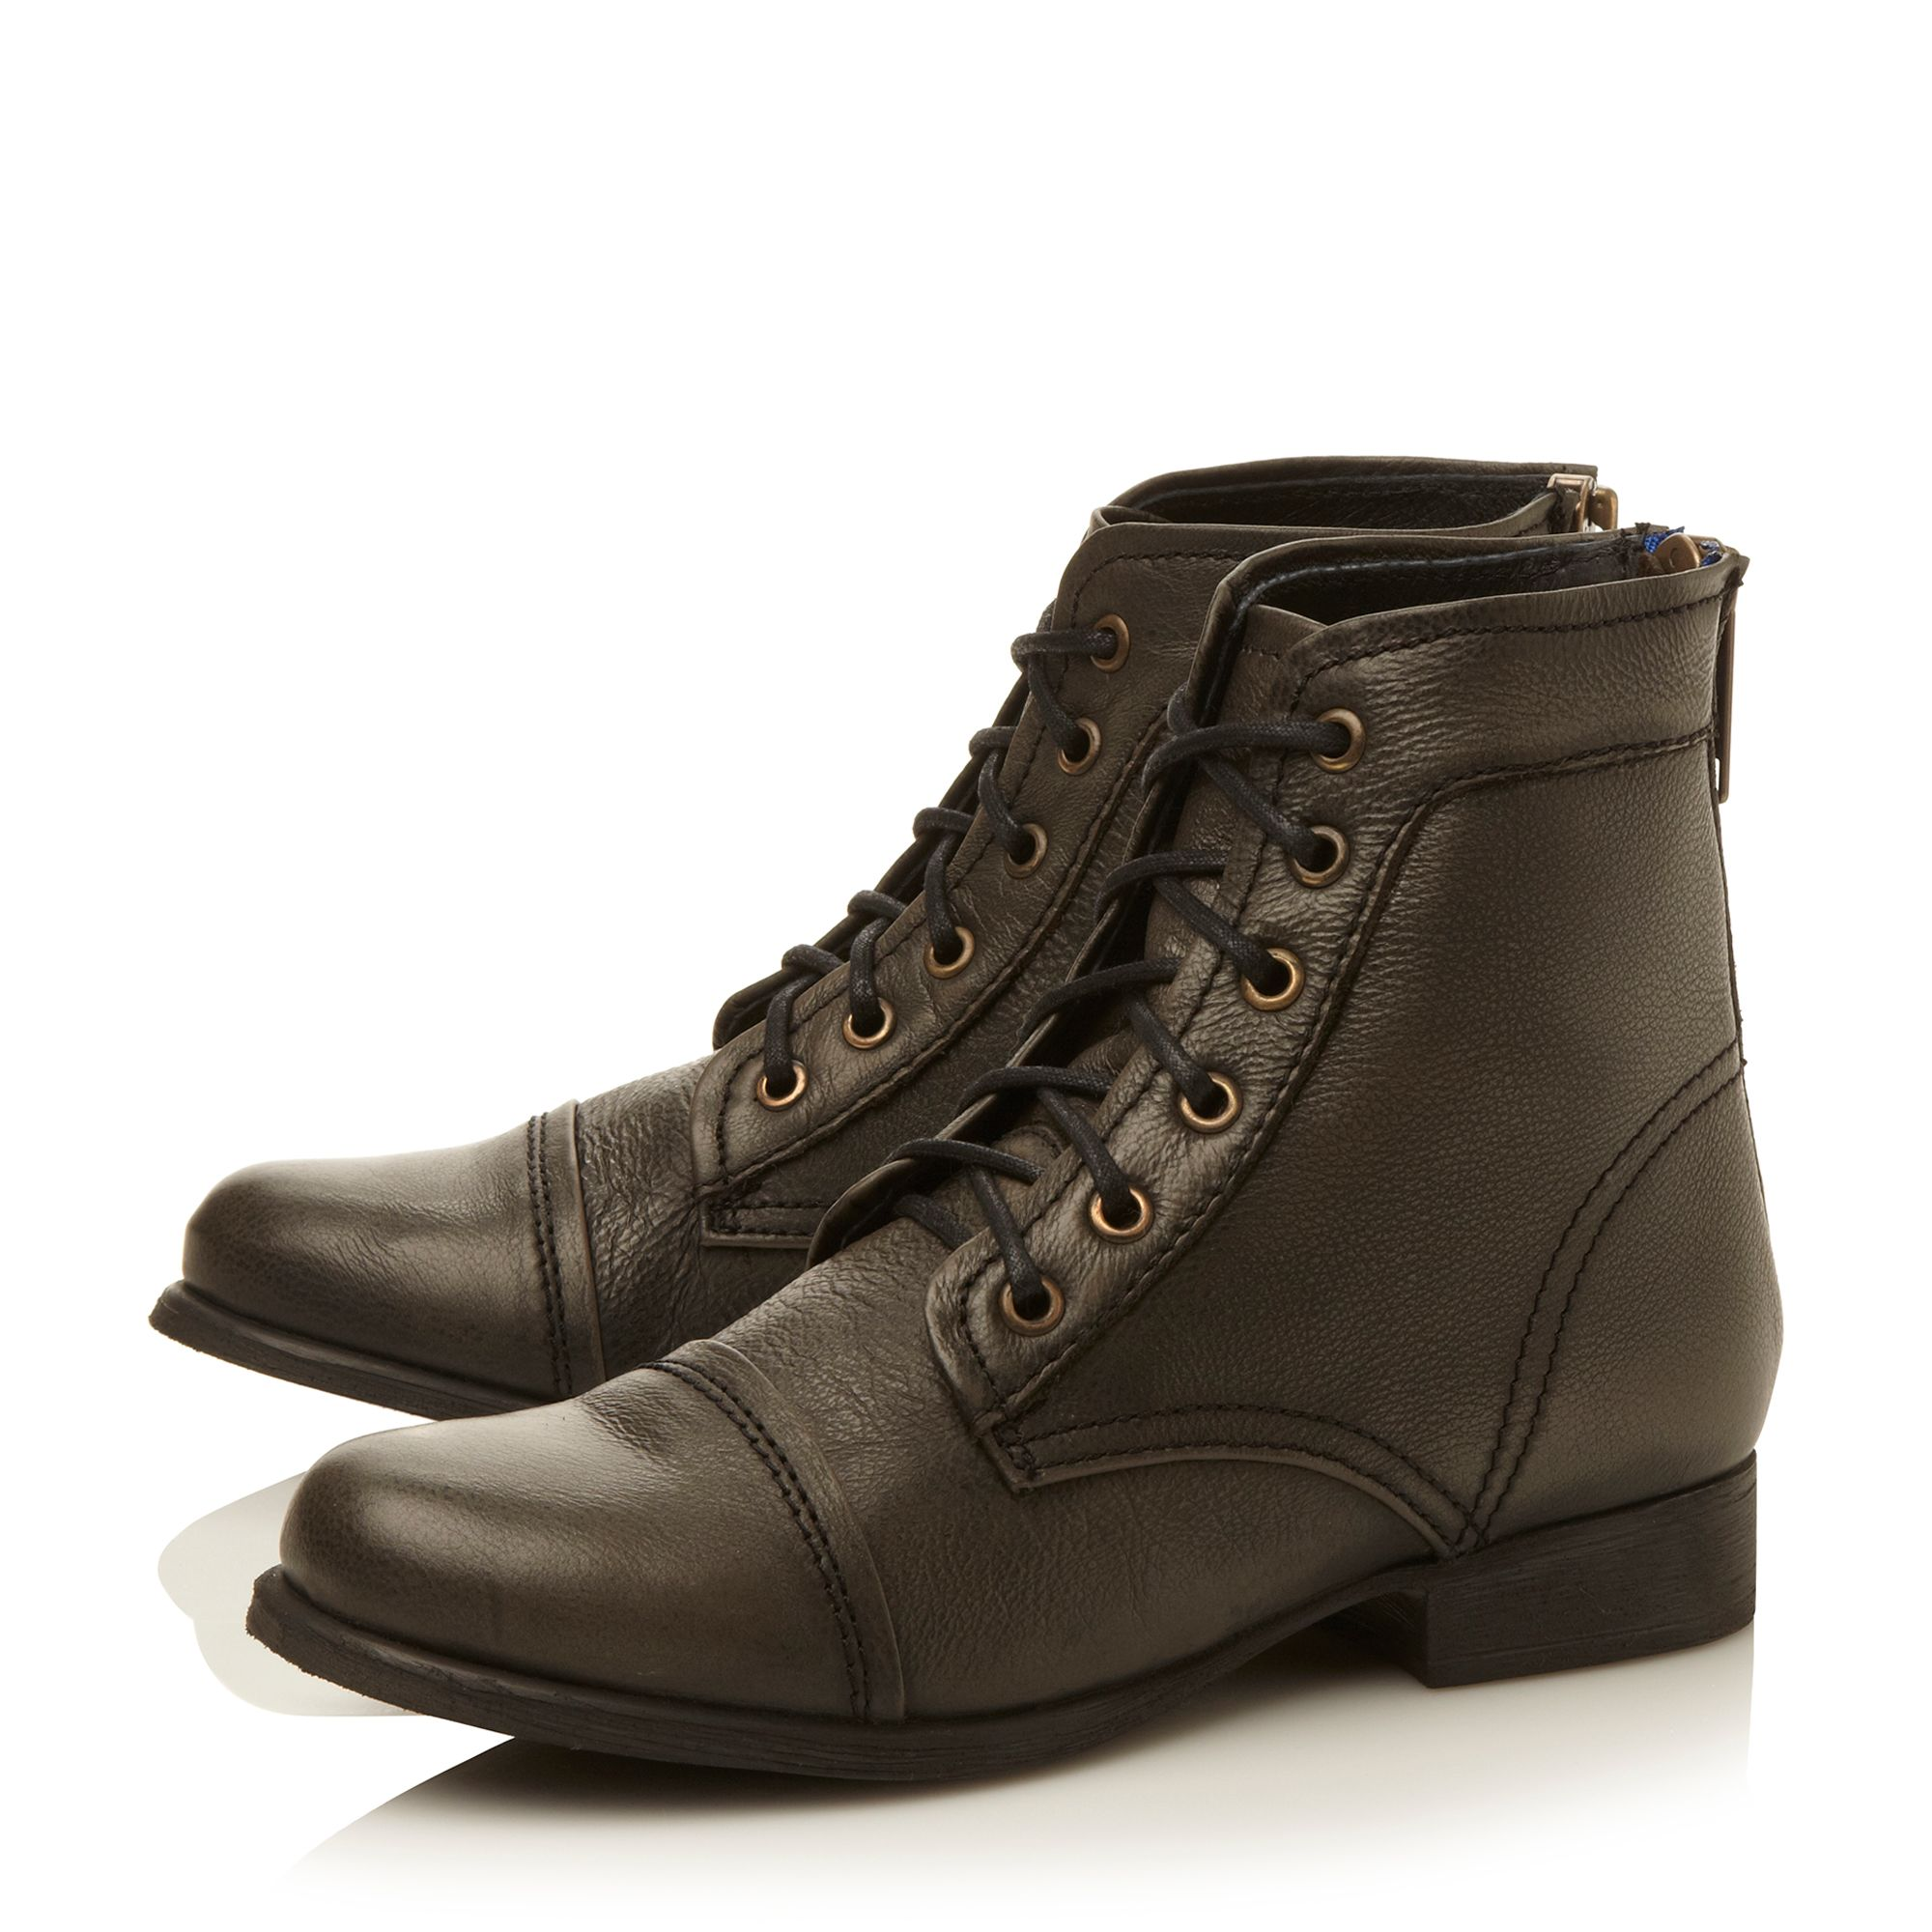 Tundra lace up ankle boots